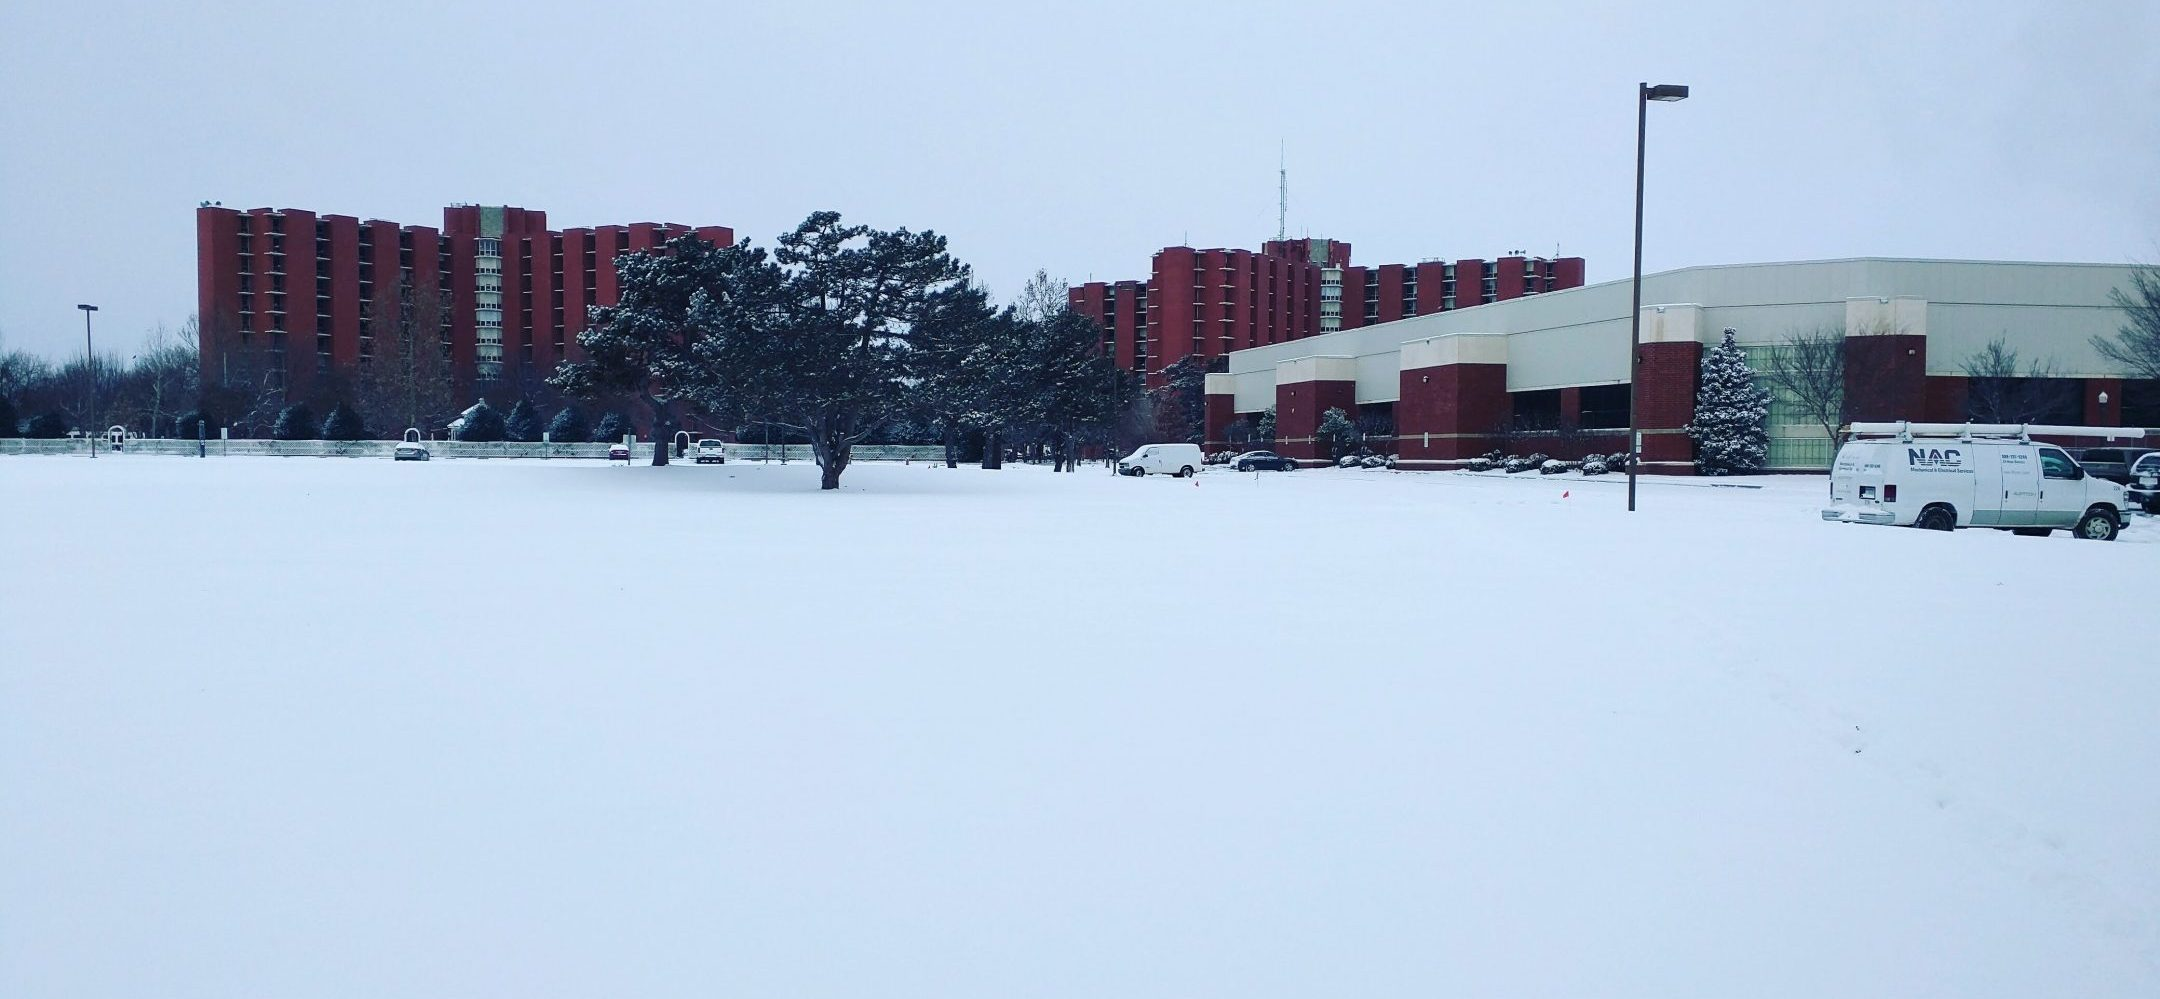 Snow covers the University of Oklahoma Campus